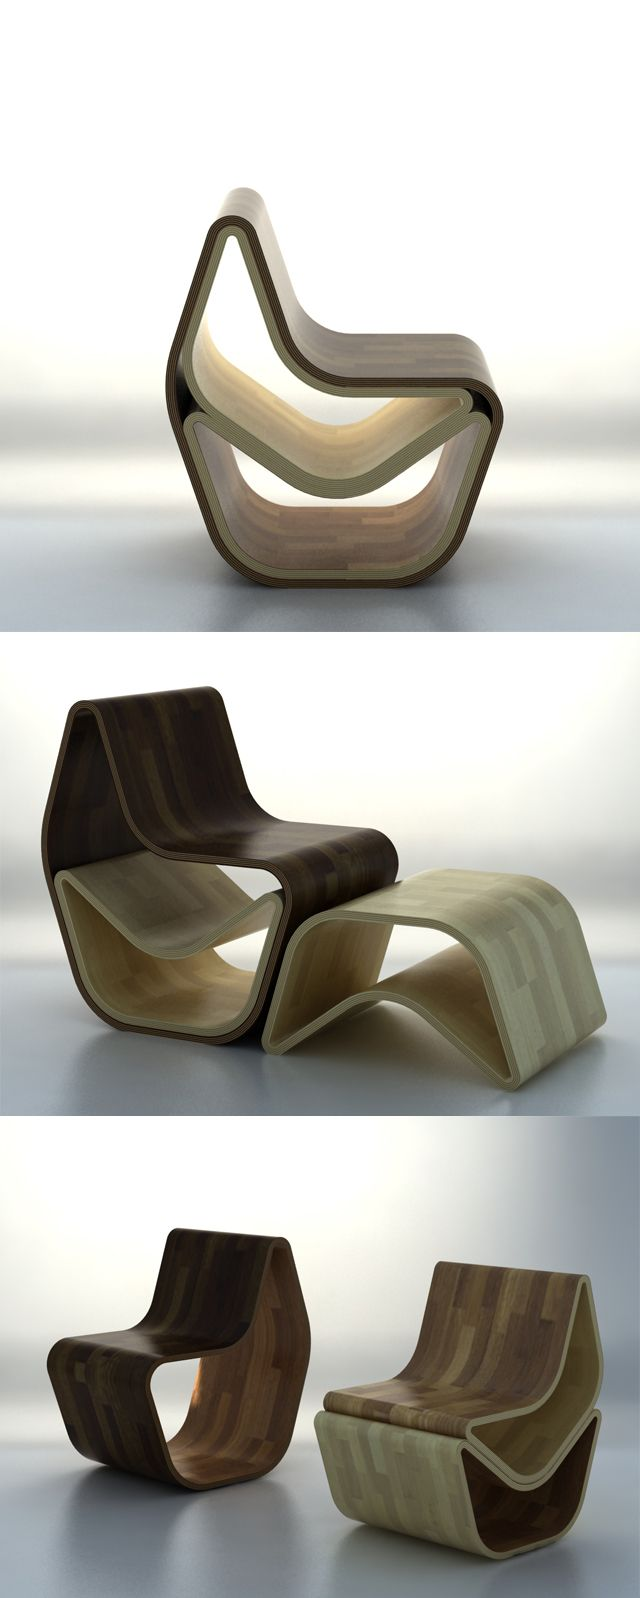 GVAL is the new chair by Ooomydesign.